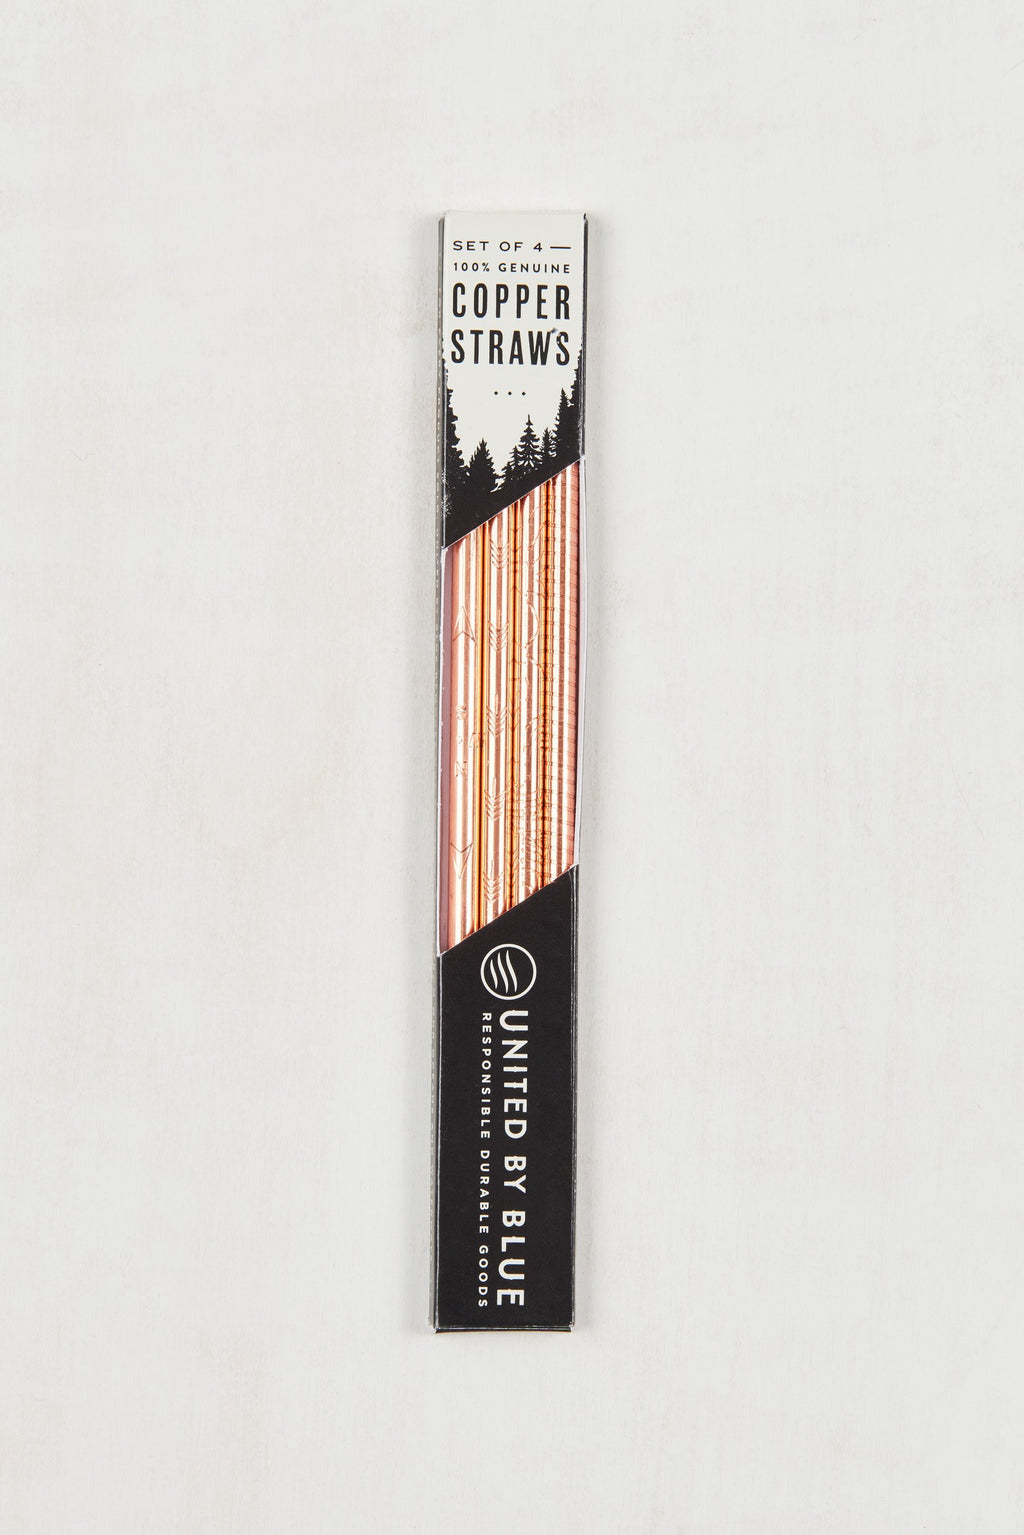 United By Blue - Copper Straws - Set of 4